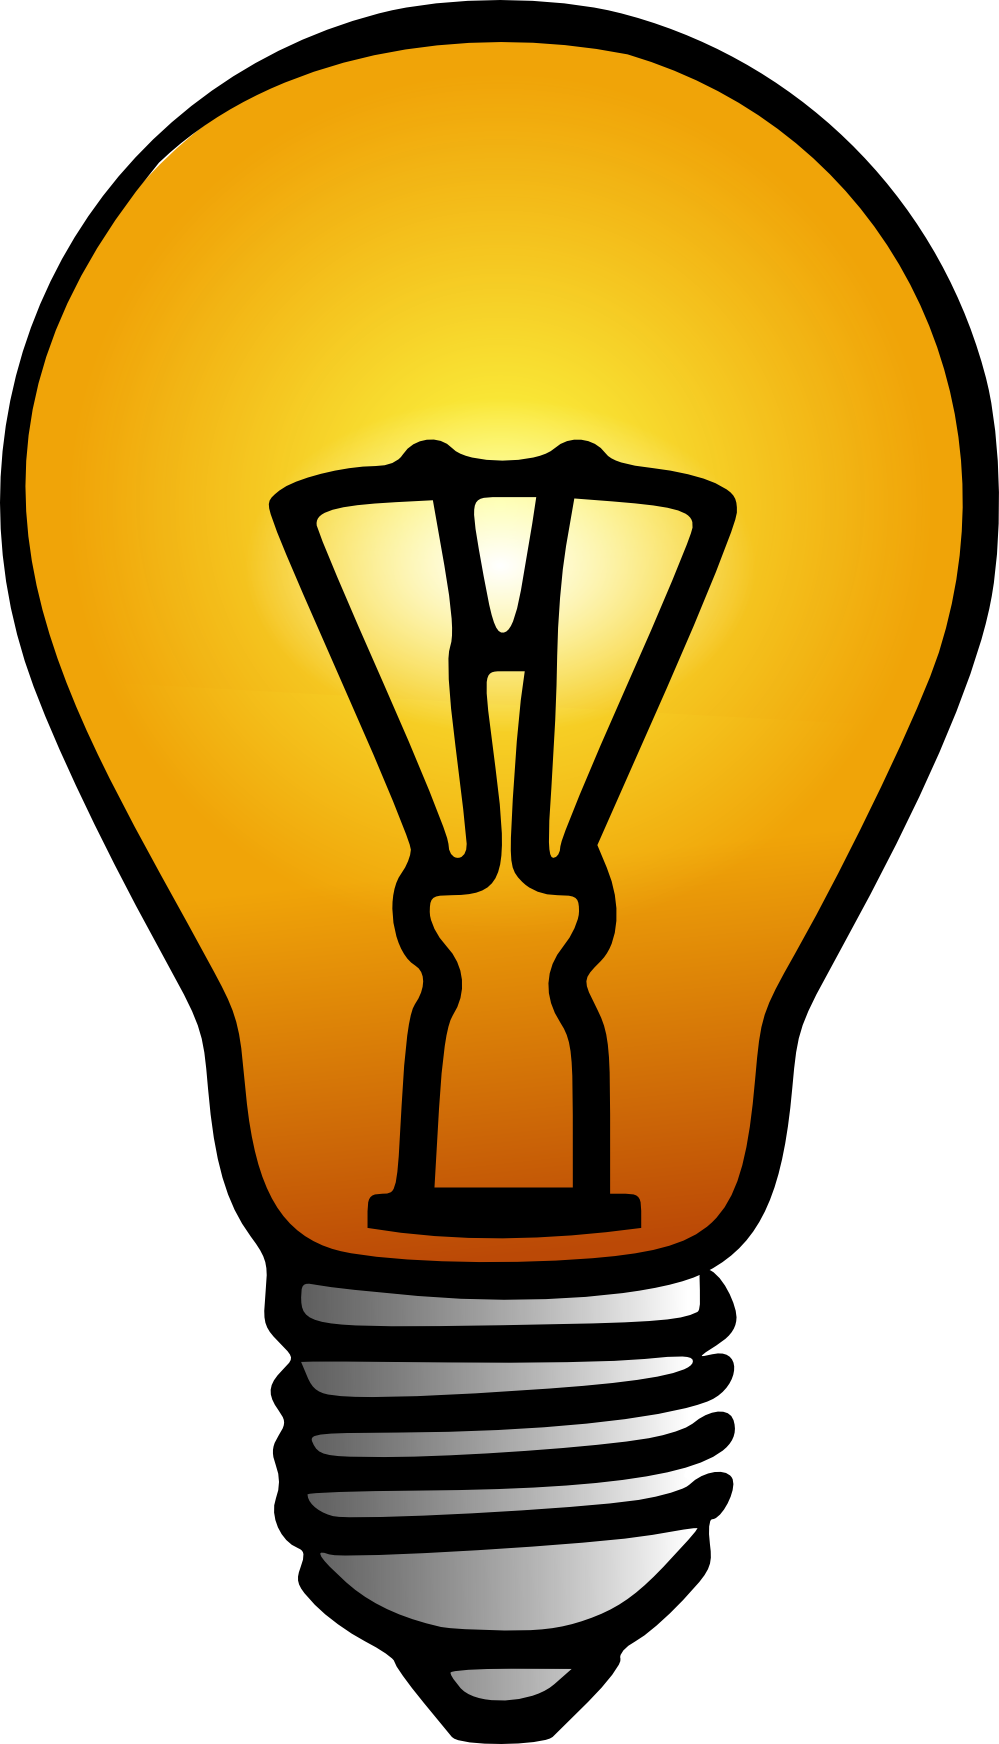 Cartoon Light Bulb Clipart